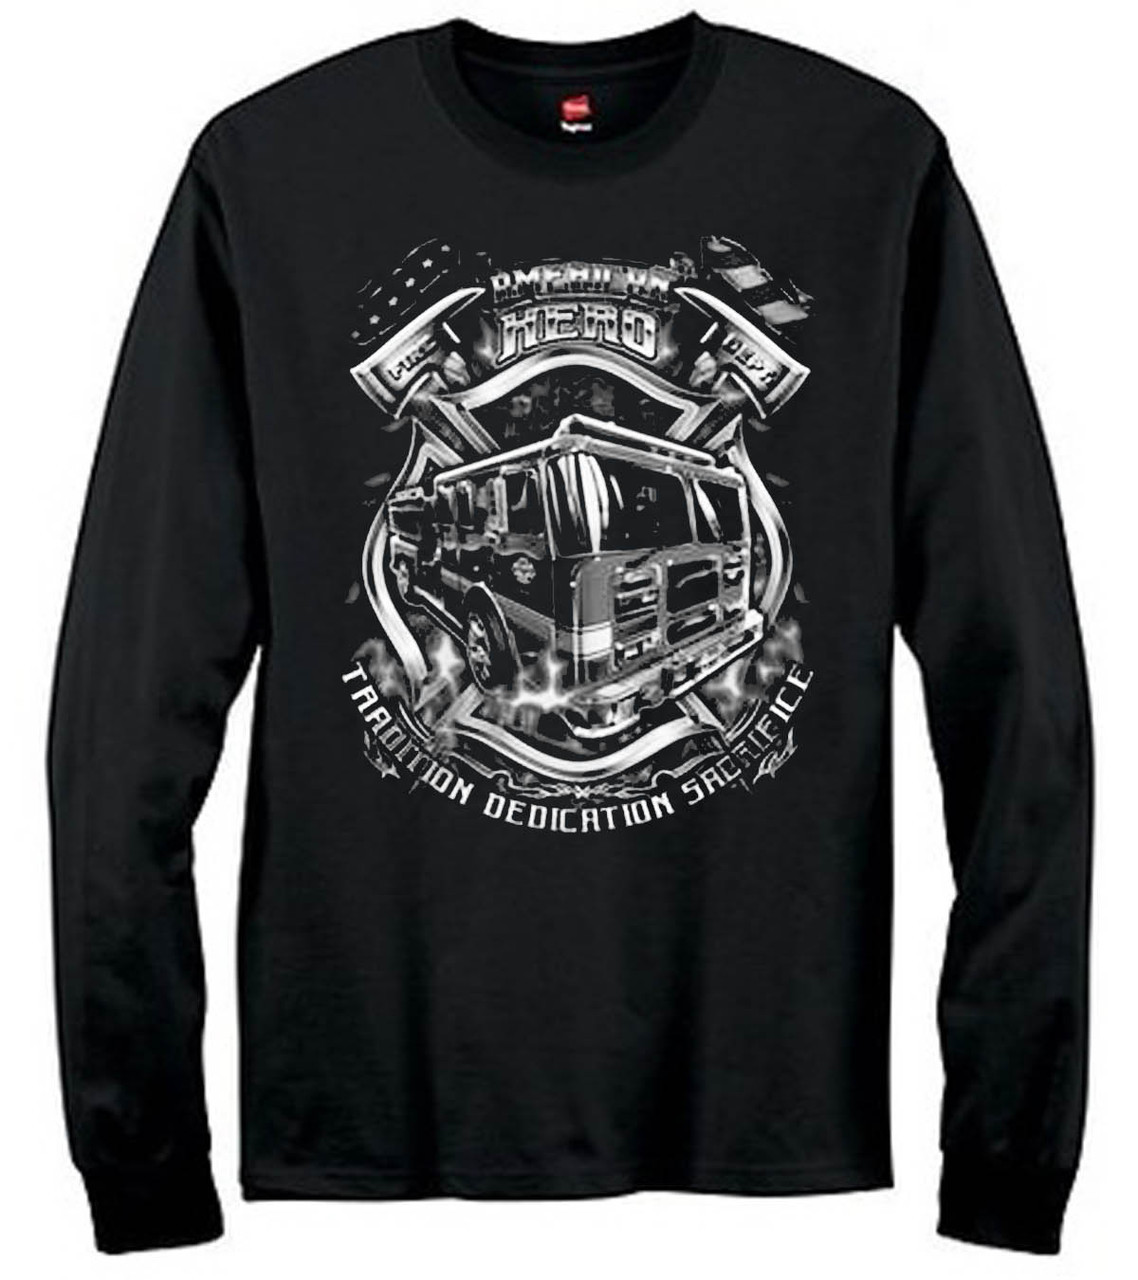 American Hero Fire Fighter Men's Long Sleeve T-Shirt